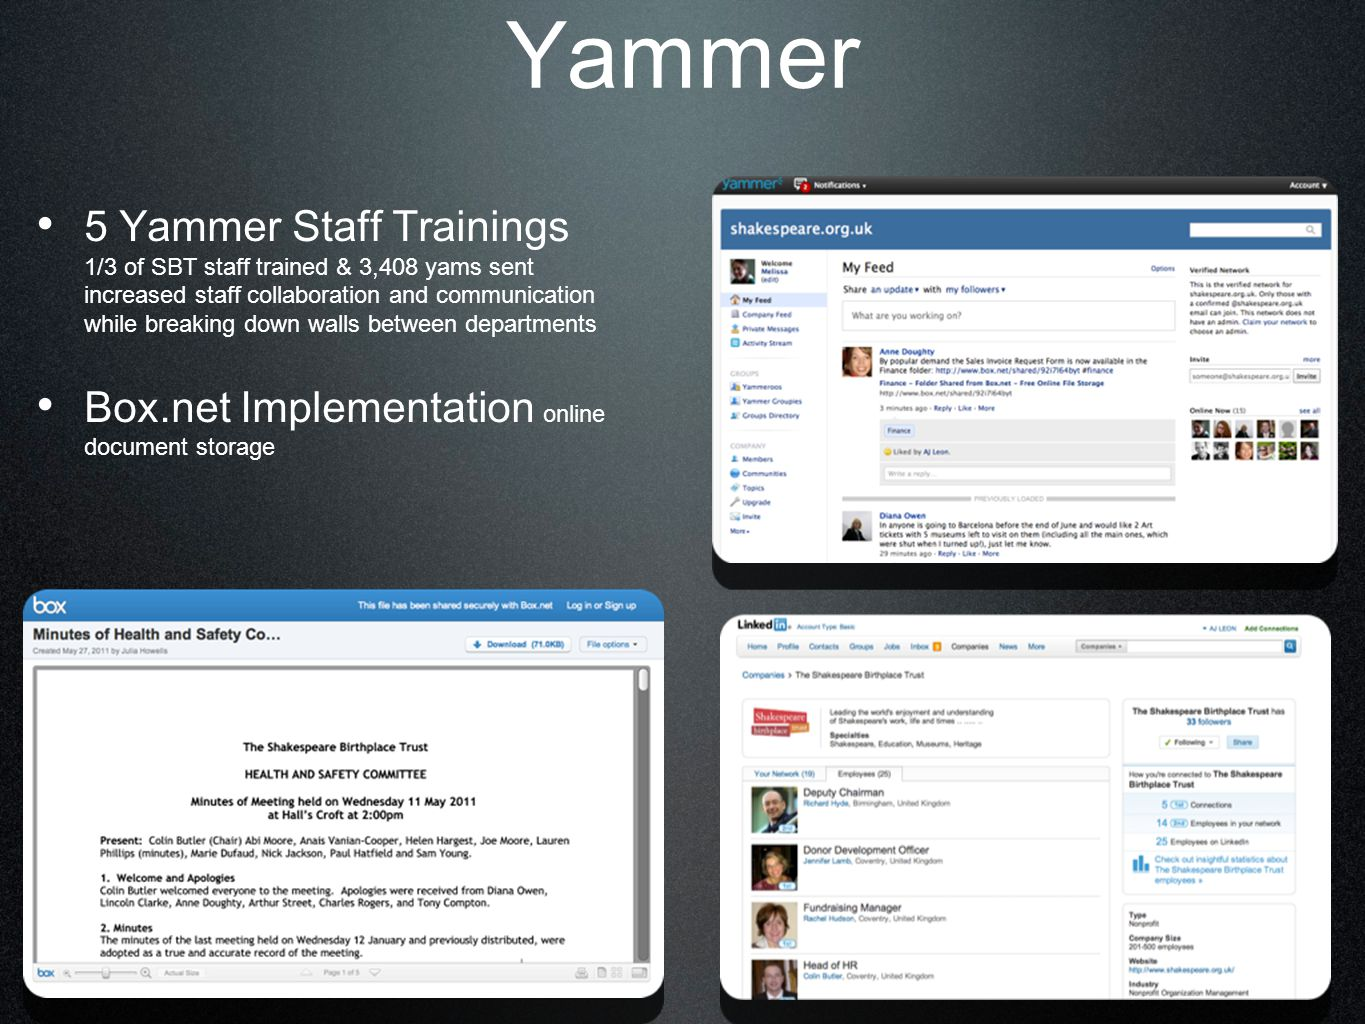 Yammer 5 Yammer Staff Trainings 1/3 of SBT staff trained & 3,408 yams sent increased staff collaboration and communication while breaking down walls between departments Box.net Implementation online document storage